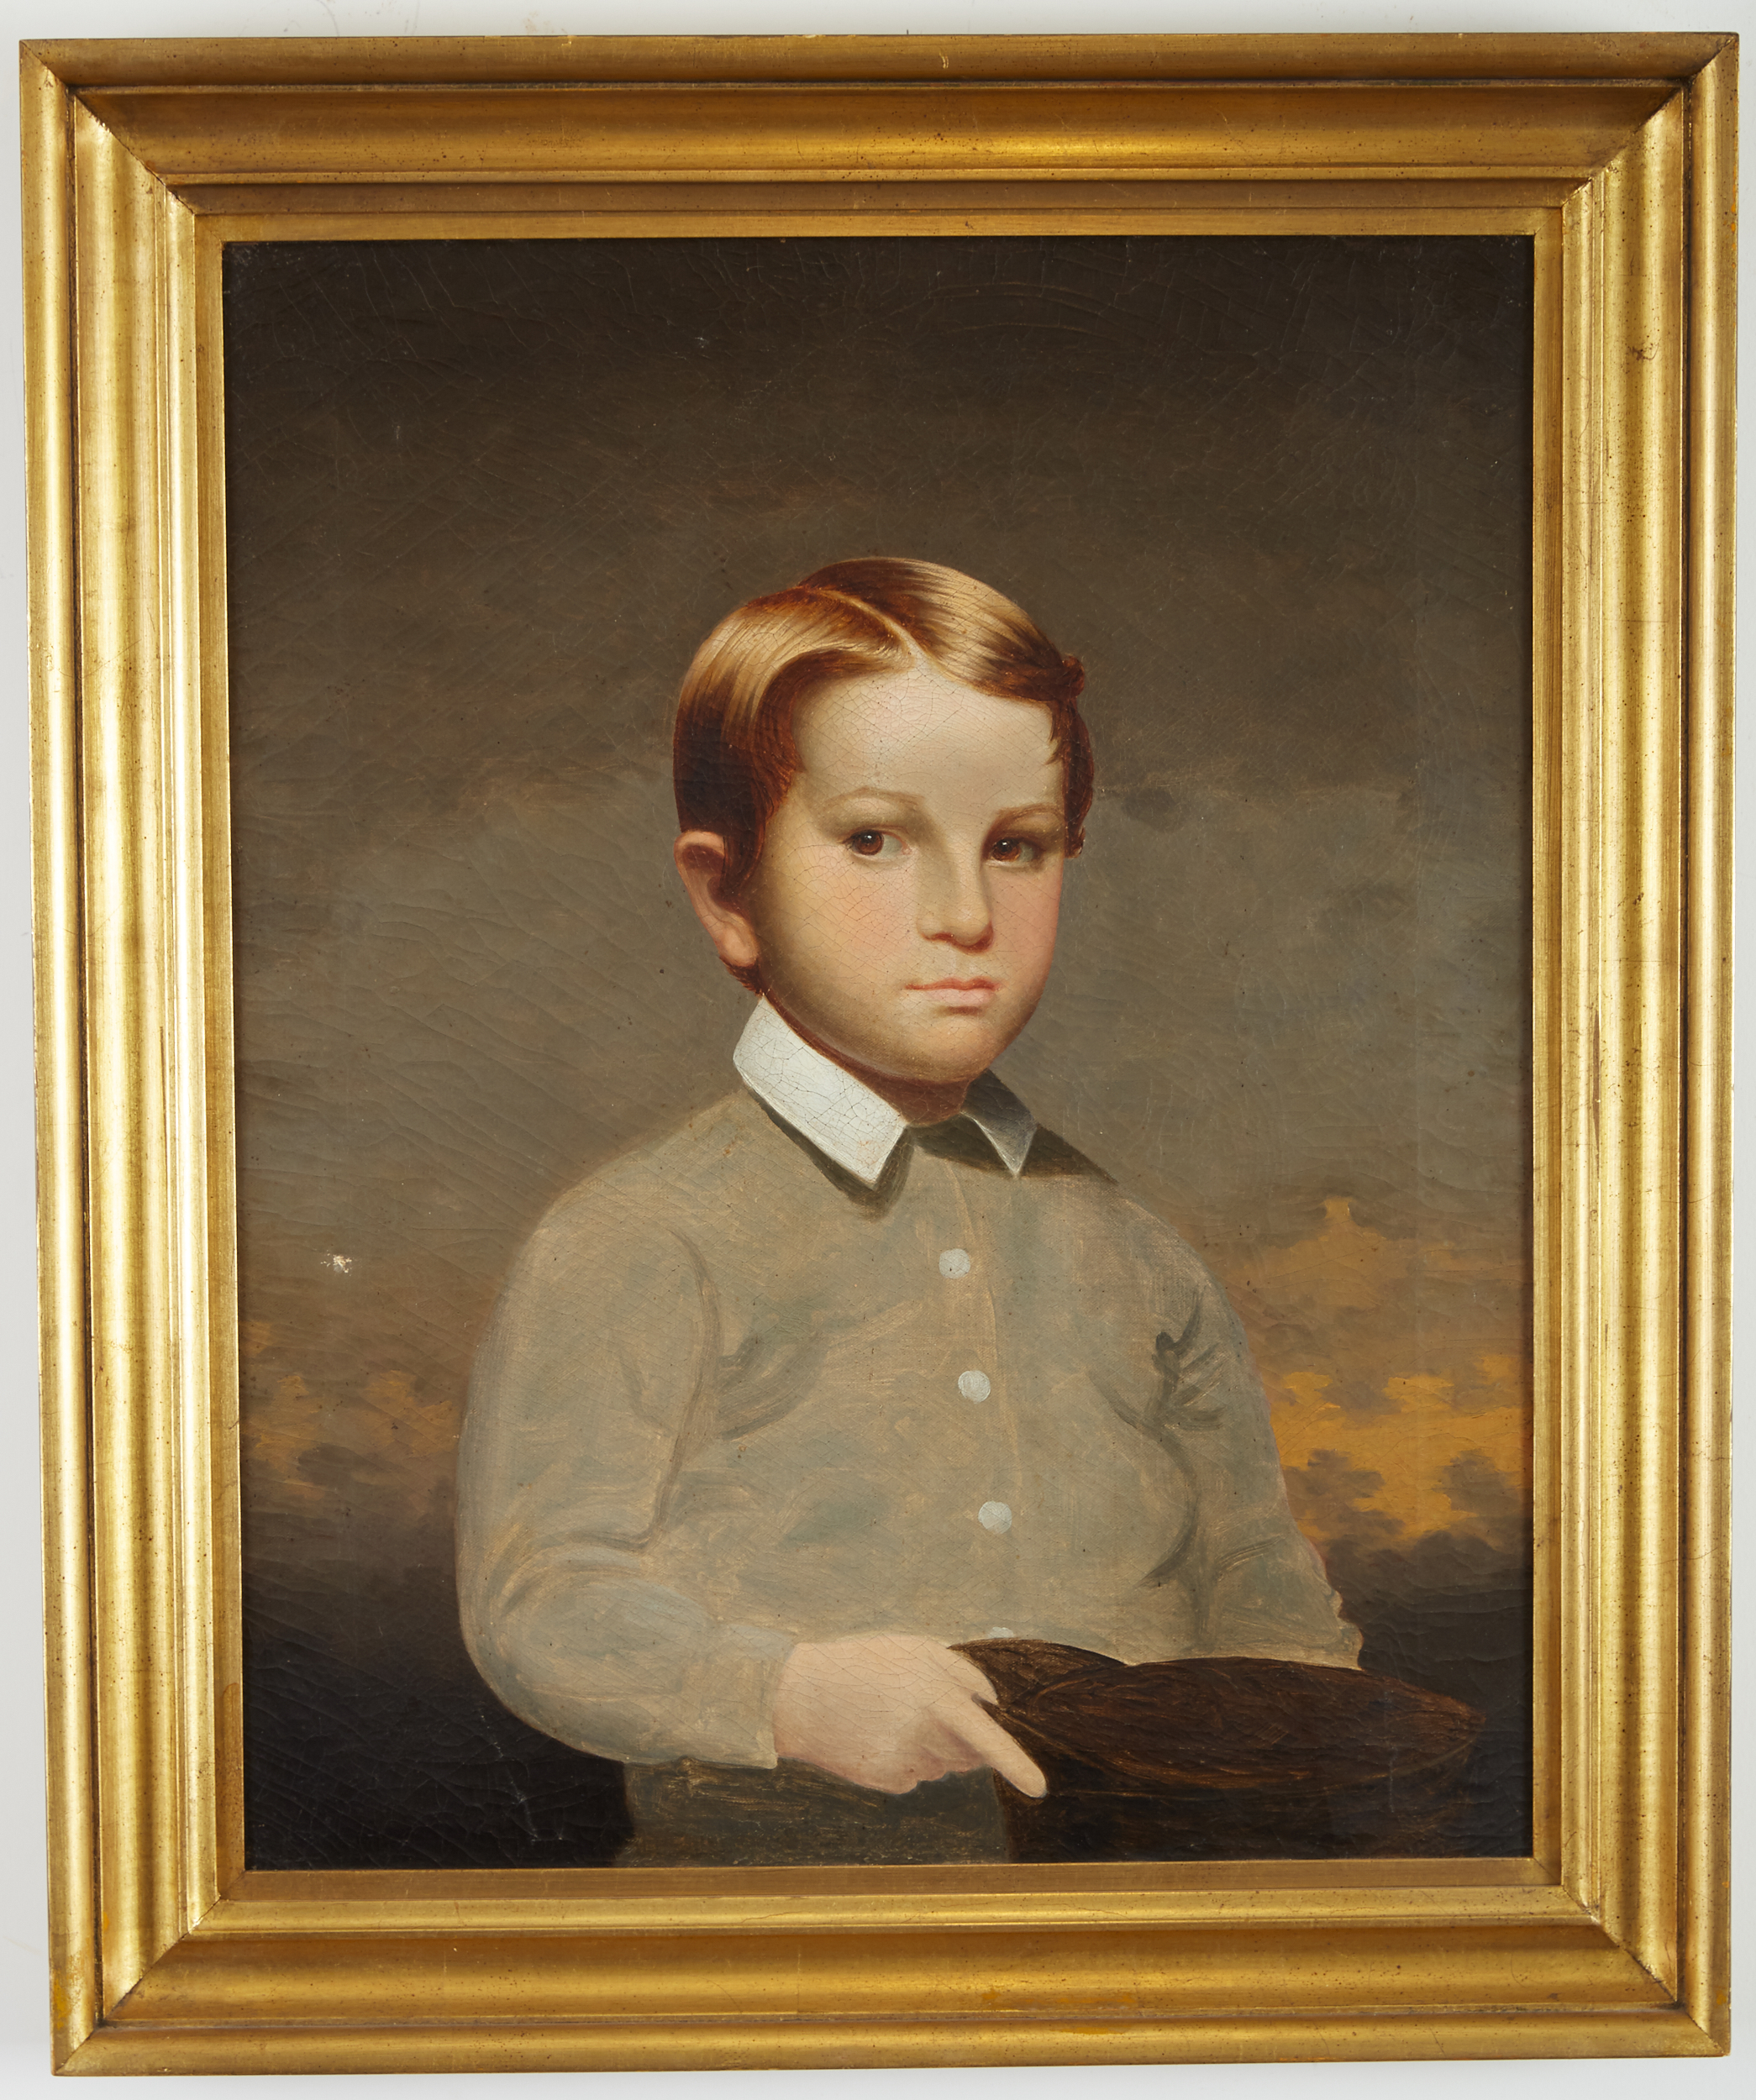 Lot 8 - Cephas Thompson Portrait of Charles Frederick Thompson